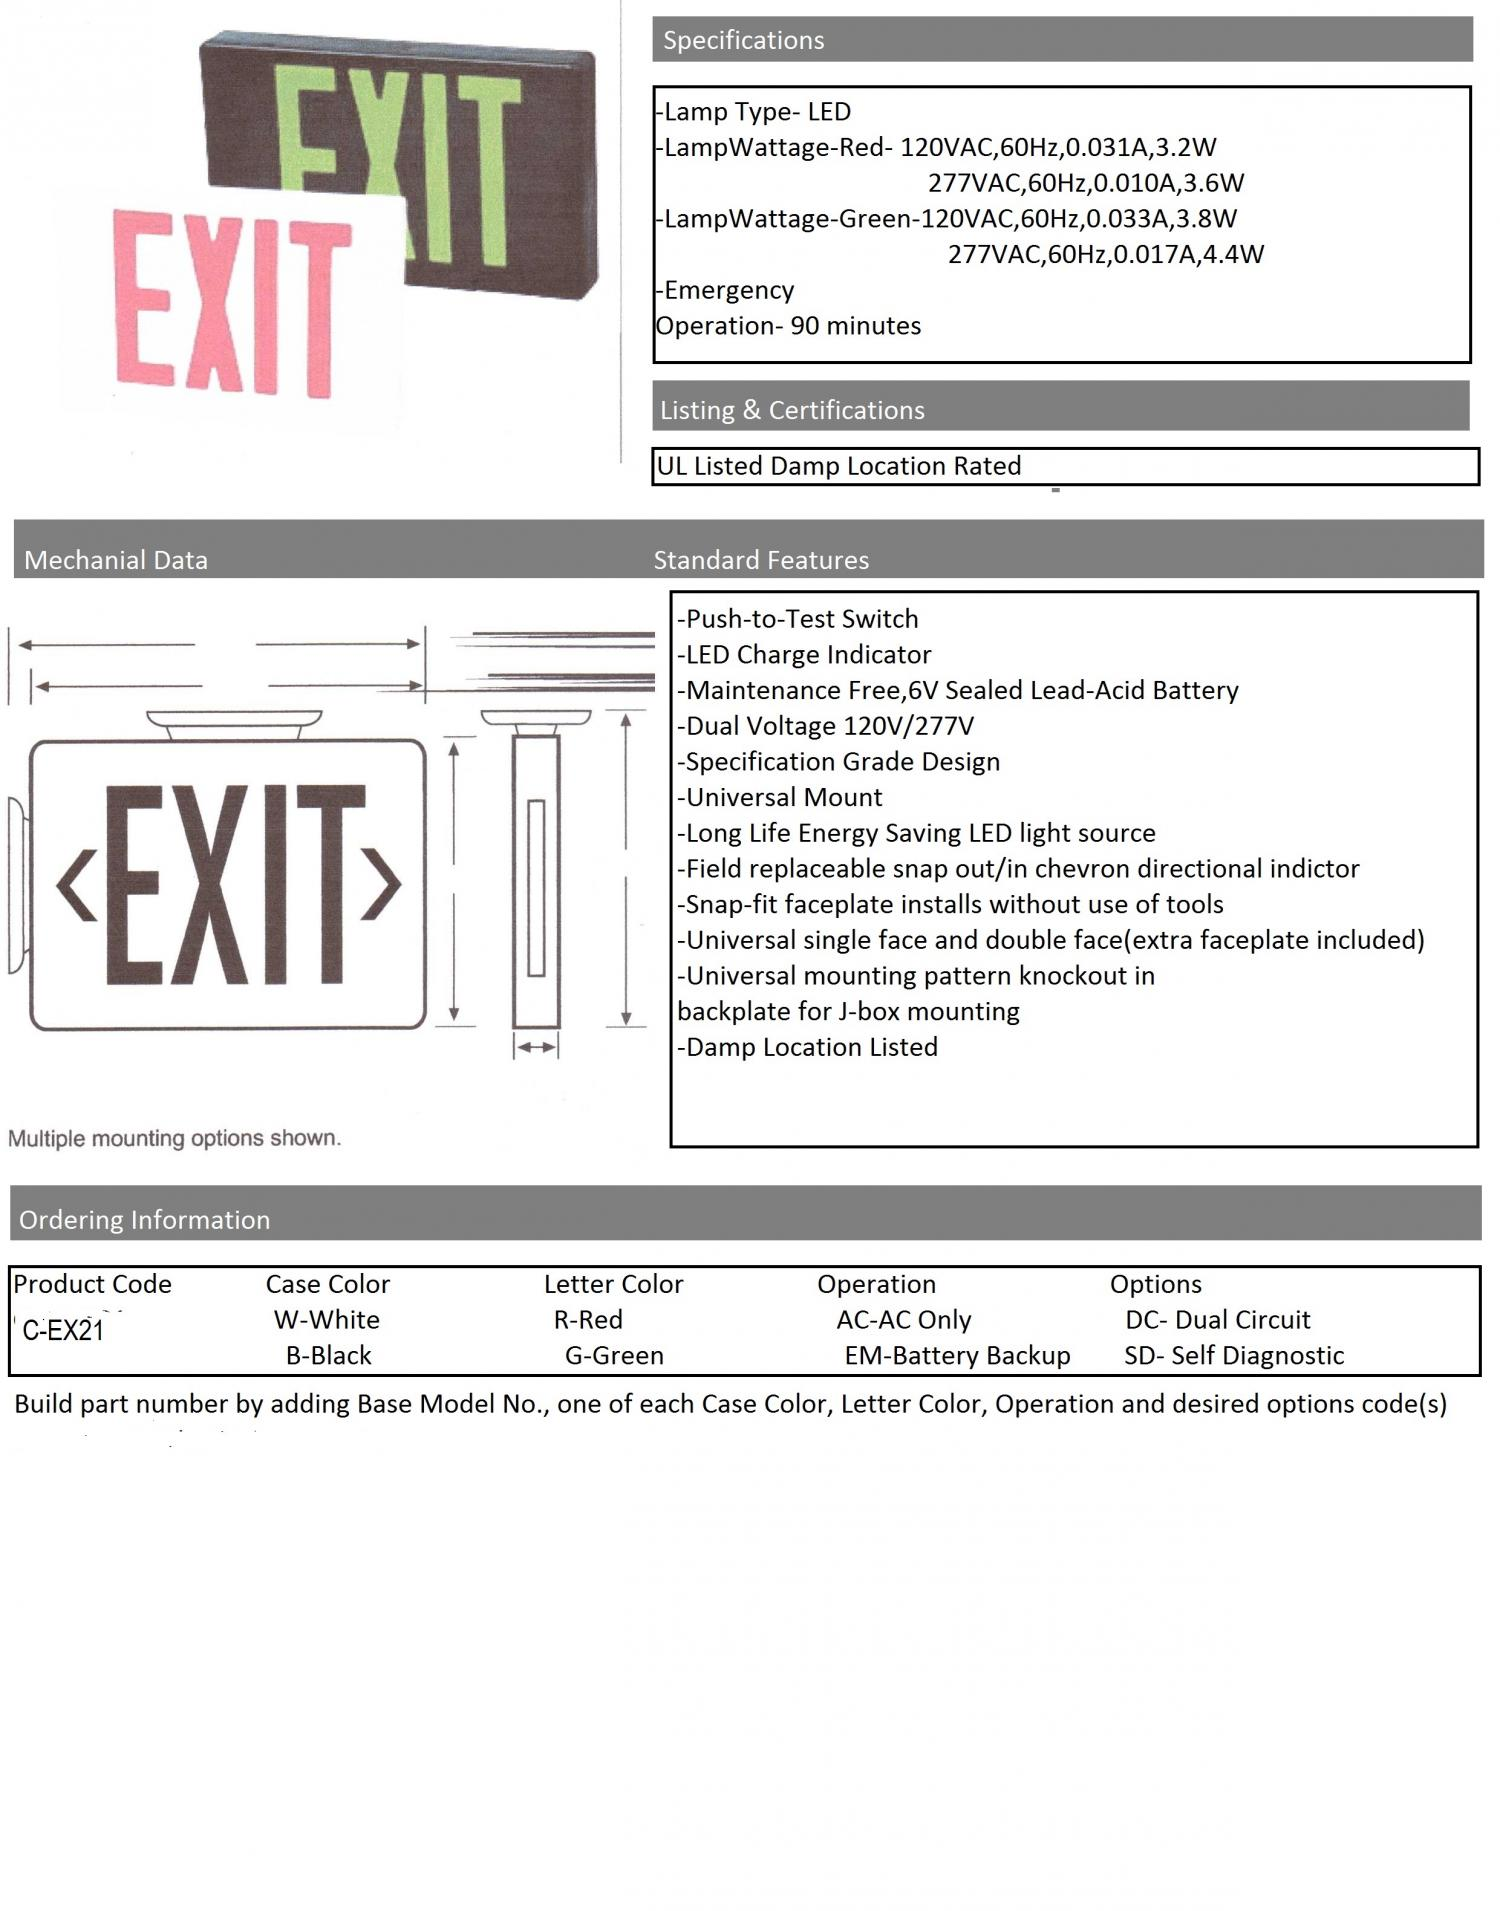 Candalux Lighting For All Your Needs Candaluxcom Exit Sign Wiring Diagram 120v 277v C Ex21